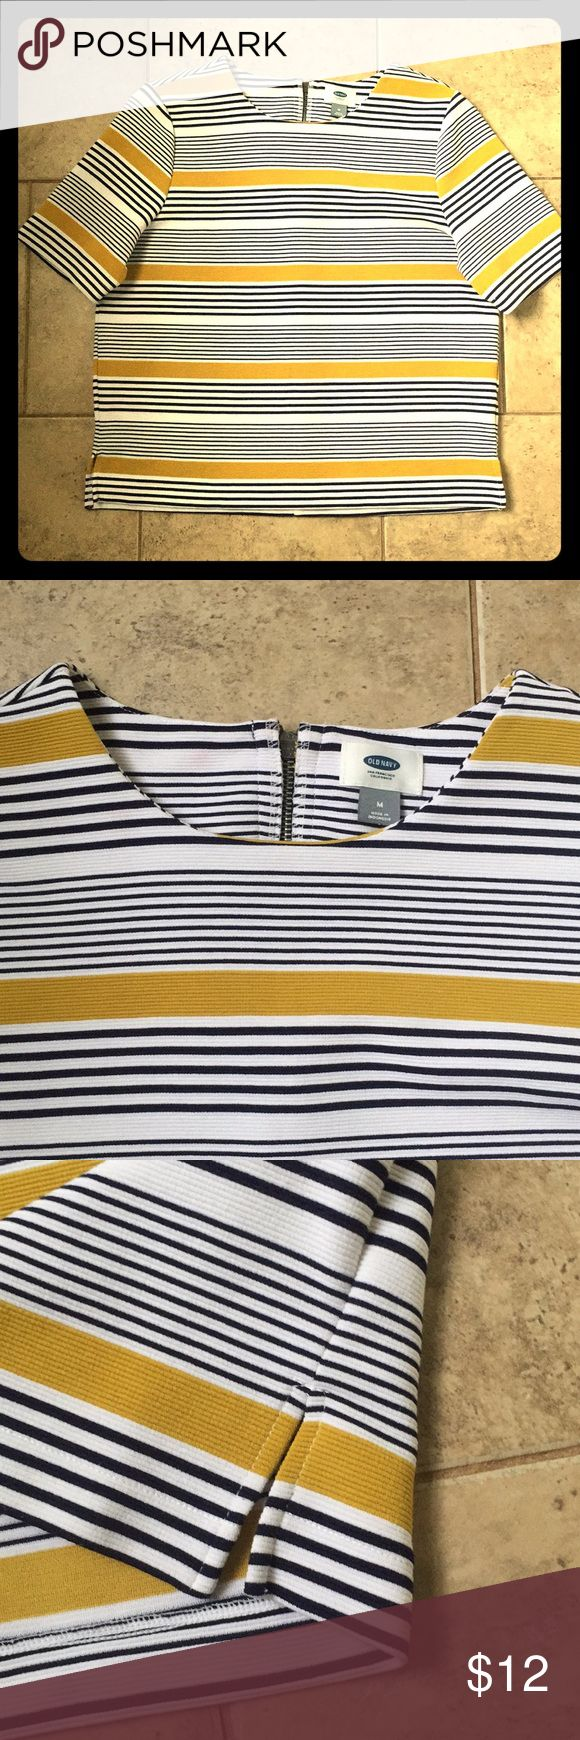 Old Navy Short Sleeve Top New, worn once, top zip back closure, Navy, Gold and white stripes Old Navy Tops Blouses